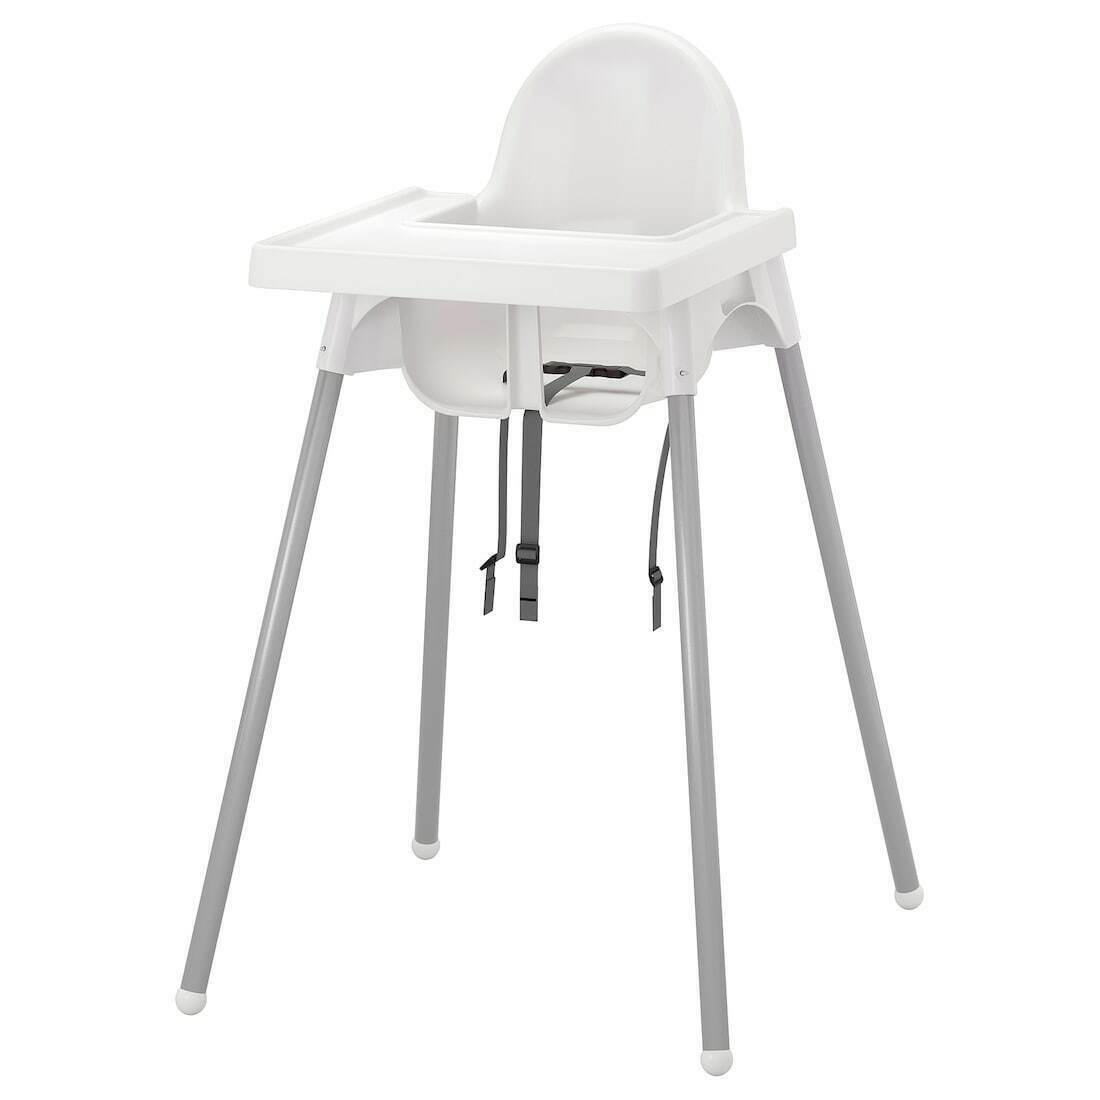 antilop baby high chairs with tray adjustable